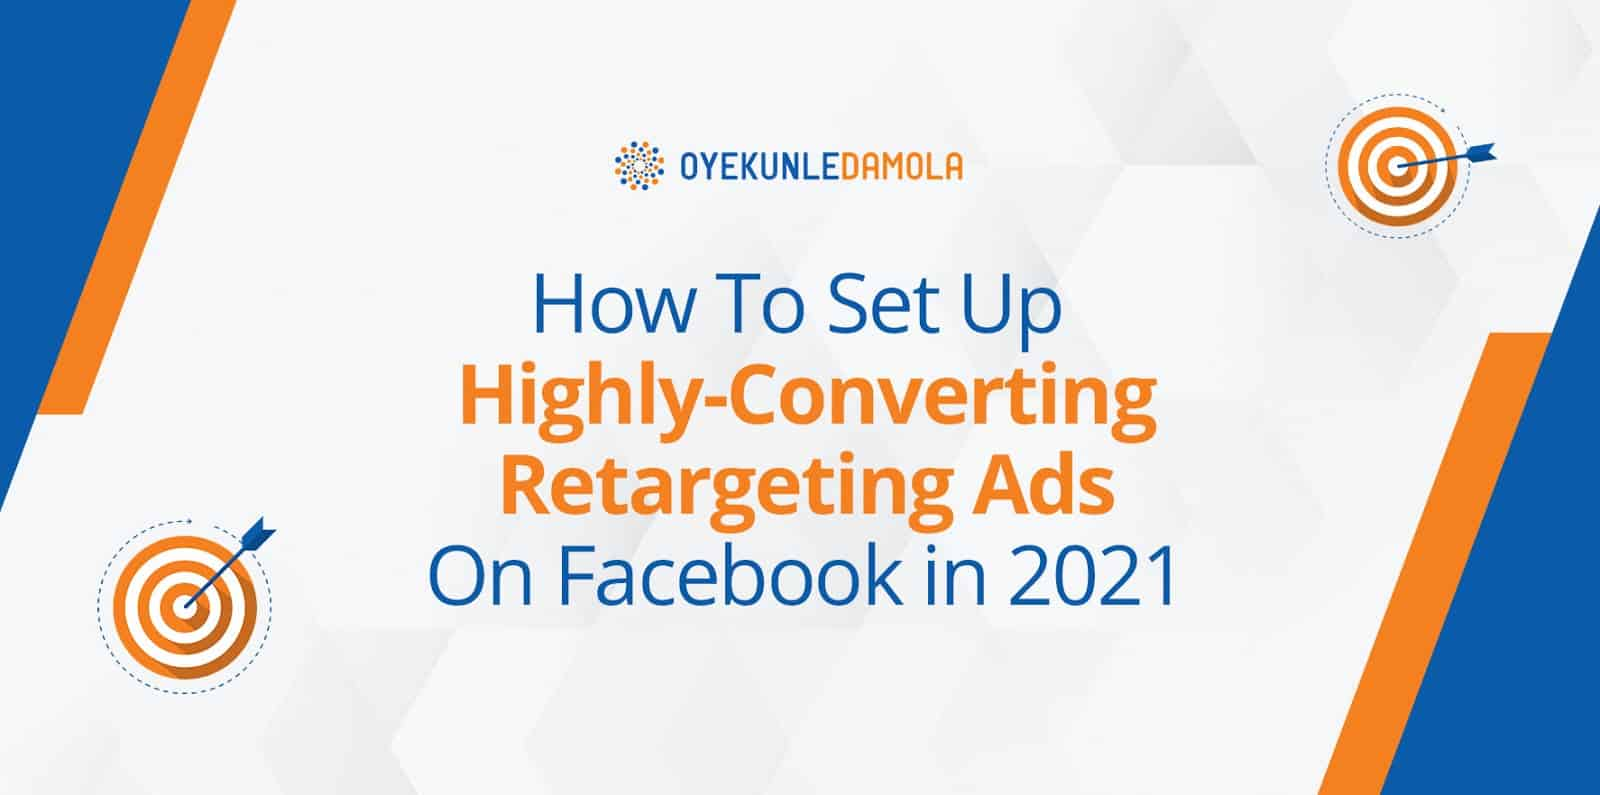 how to set up highly converting retargeting ads on Facebook in 2021